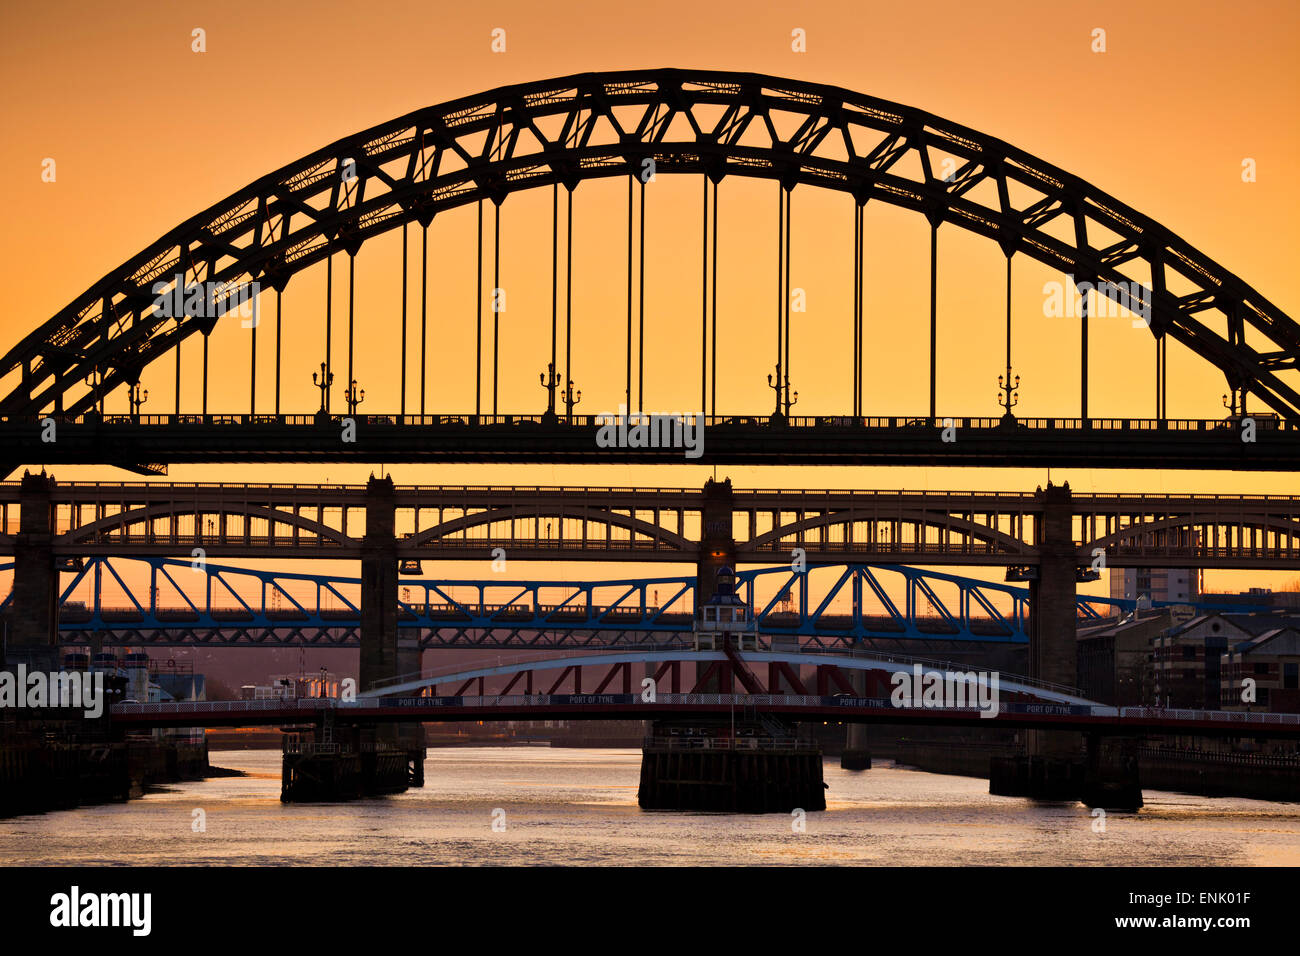 Newcastle upon Tyne skyline, Gateshead con il Tyne ponte sul fiume Tyne, Tyne and Wear, Tyneside, England, Regno Foto Stock